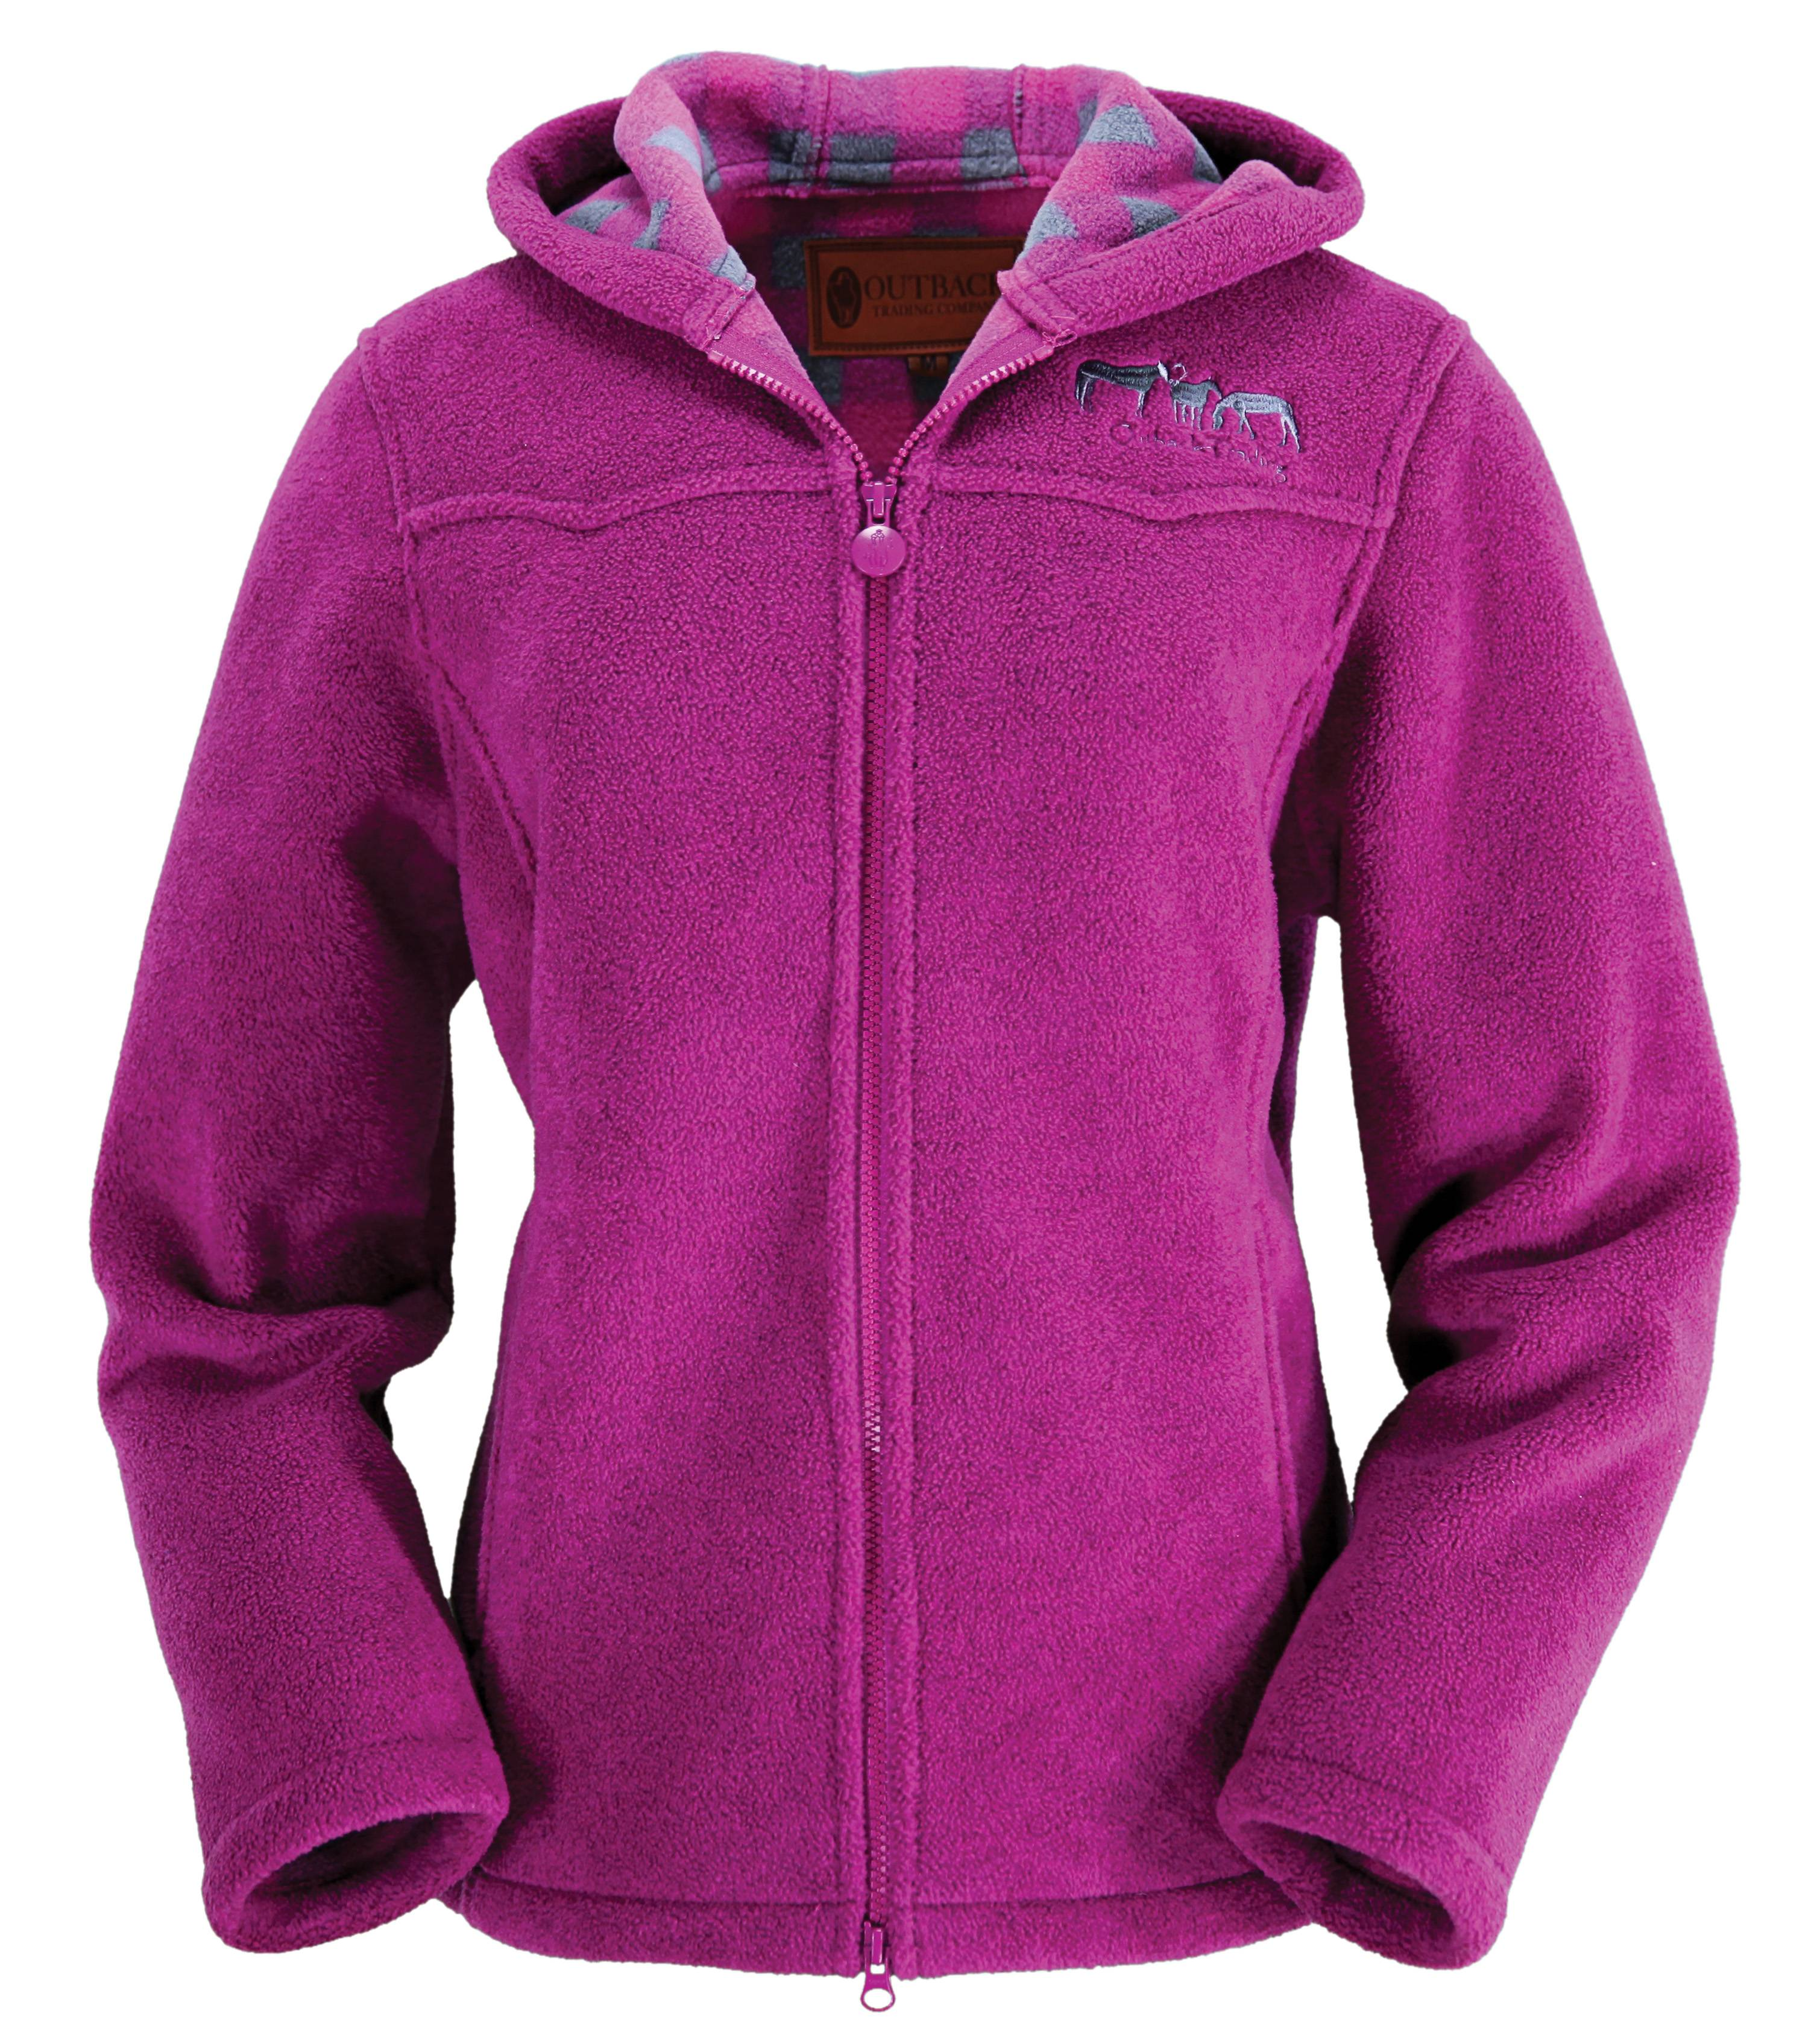 Outback Trading Mt. Rocky Hoodie